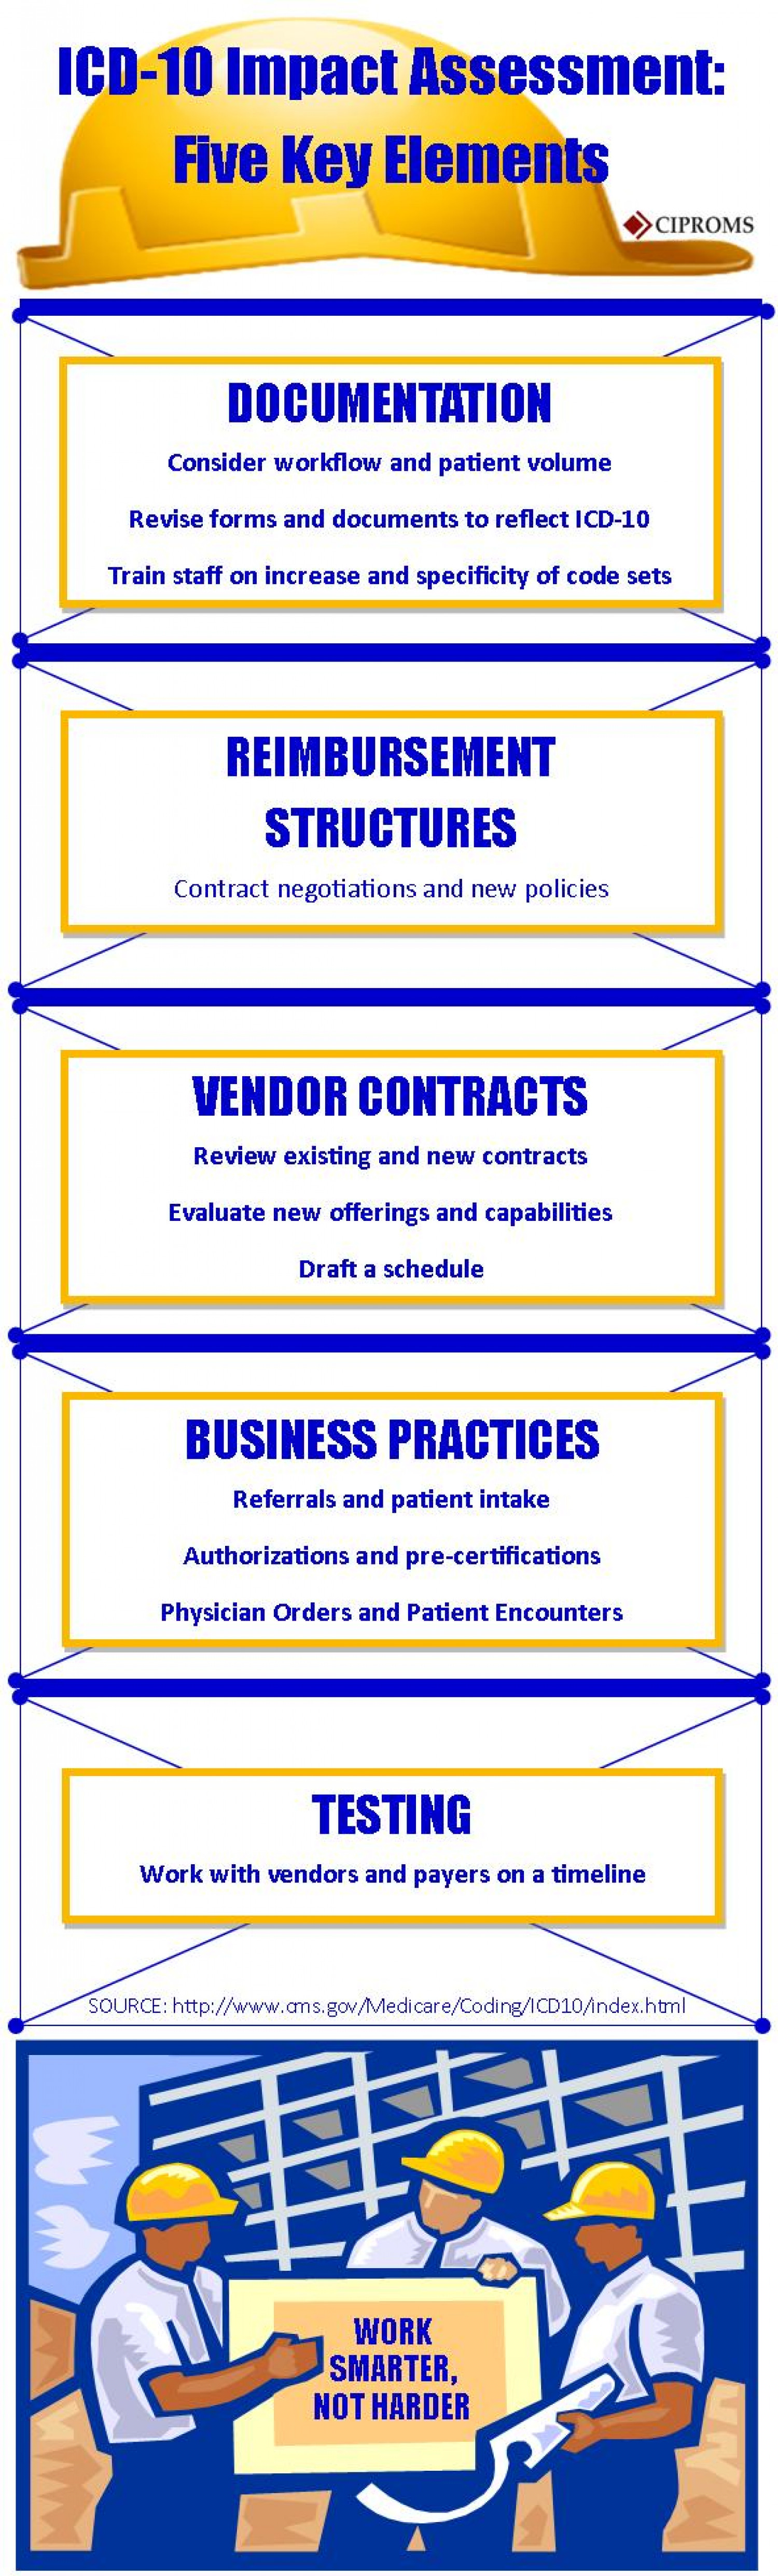 ICD-10 Impact Assessment: Five Key Elements Infographic